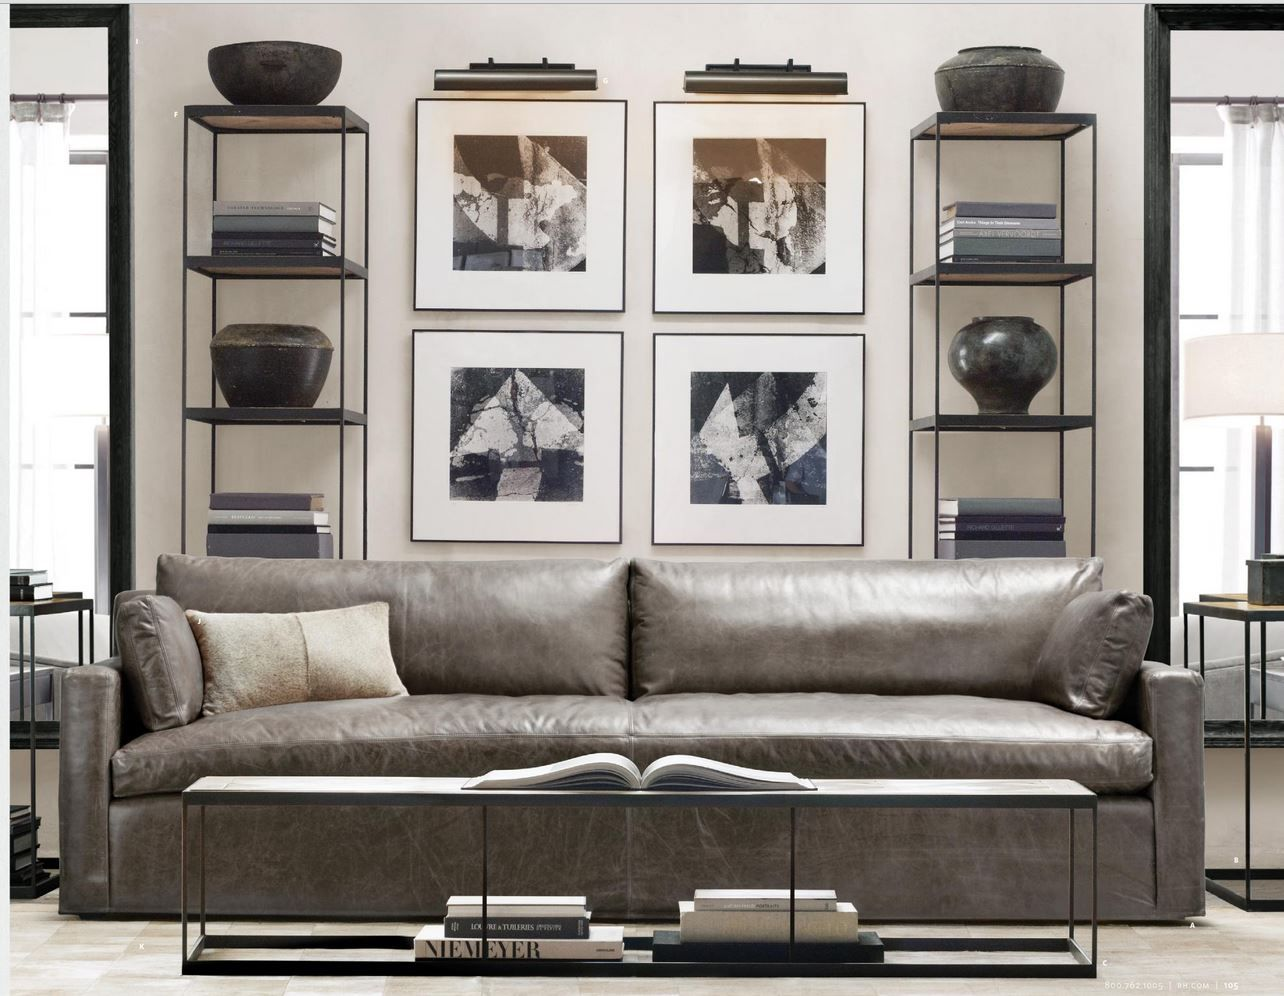 Grey Leather Sofa Small Apartment Living Room Small Apartment Decorating Living Room Living Room Decor Apartment